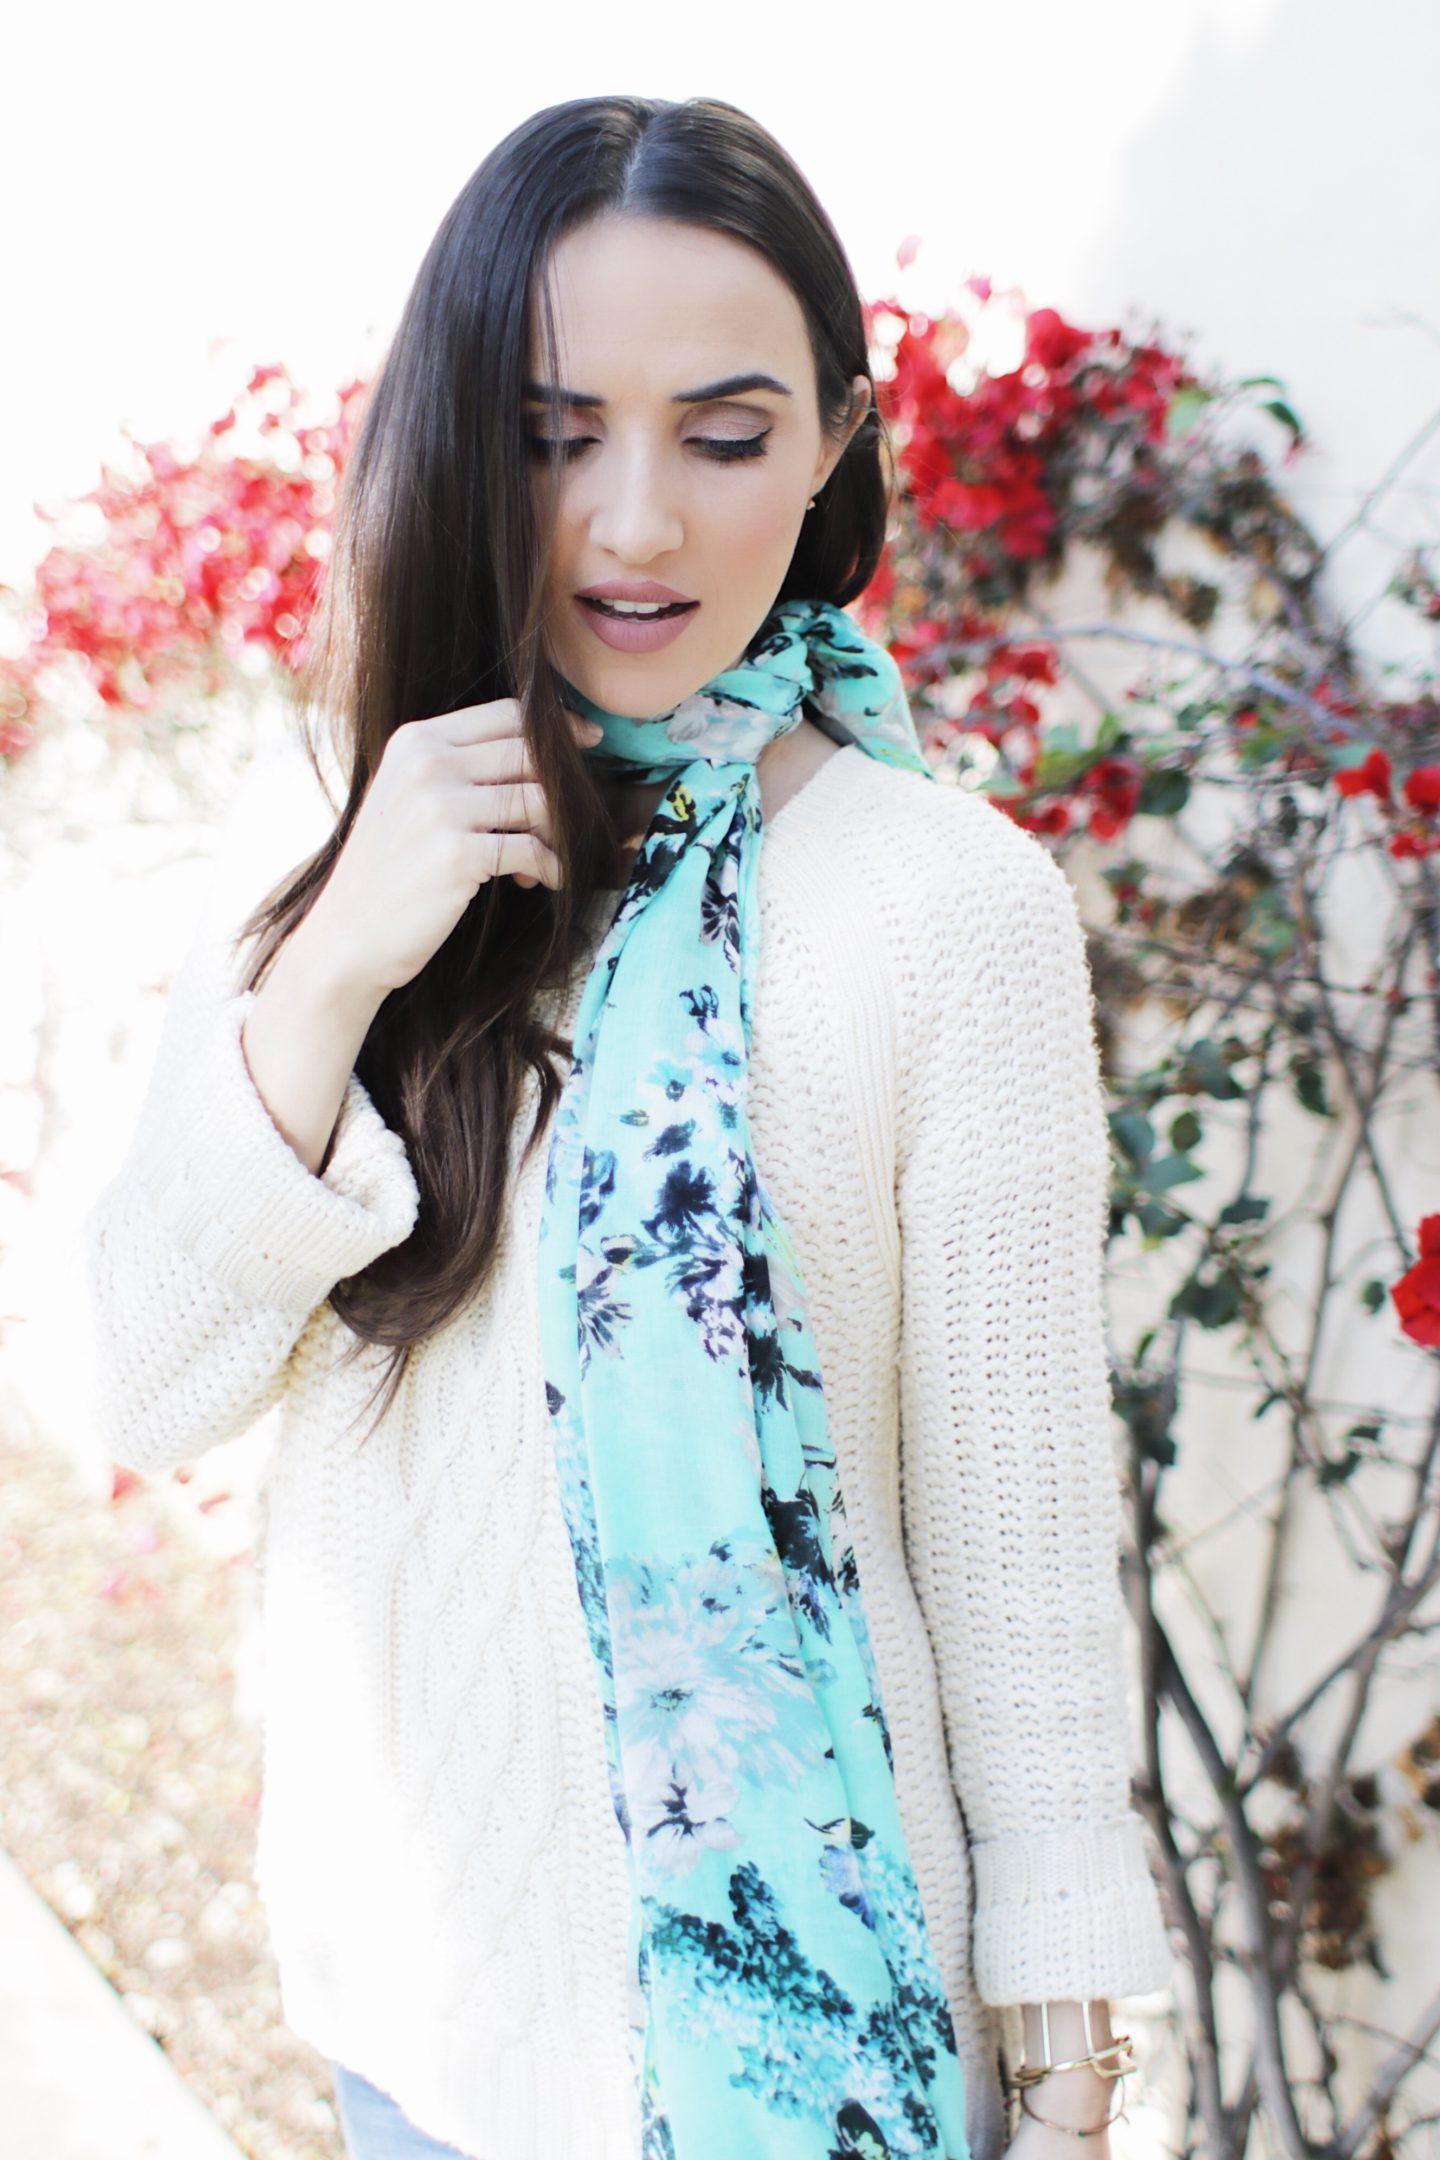 Favorite Valentine's Day Outfits! Casual Knit Sweater and Bright Scarf Outfit for Valentine's Day! - thecasualfree.com